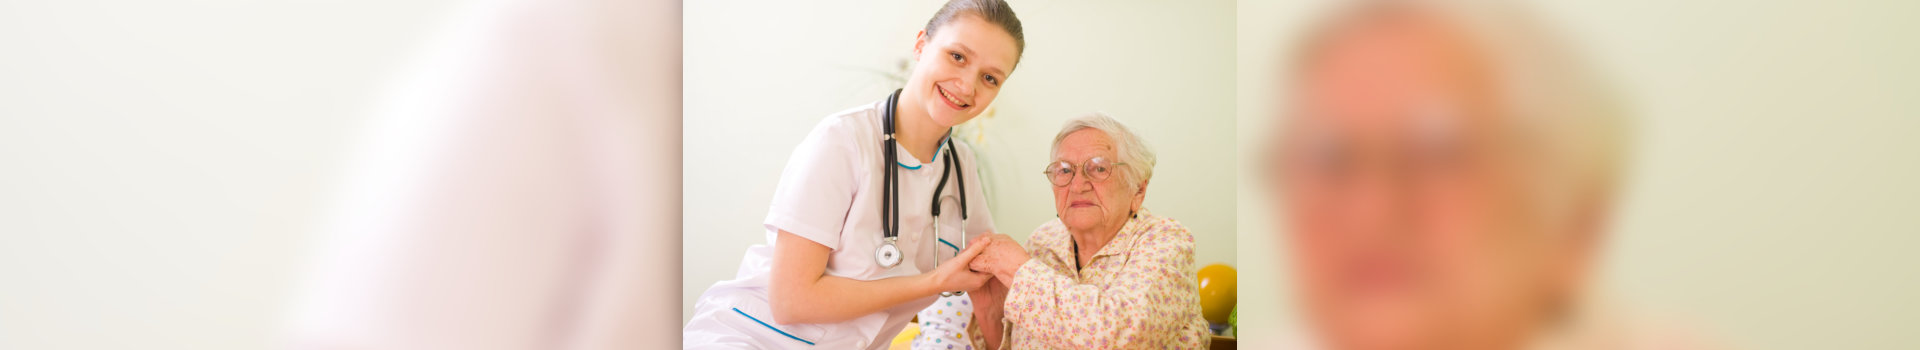 caregiver and old woman